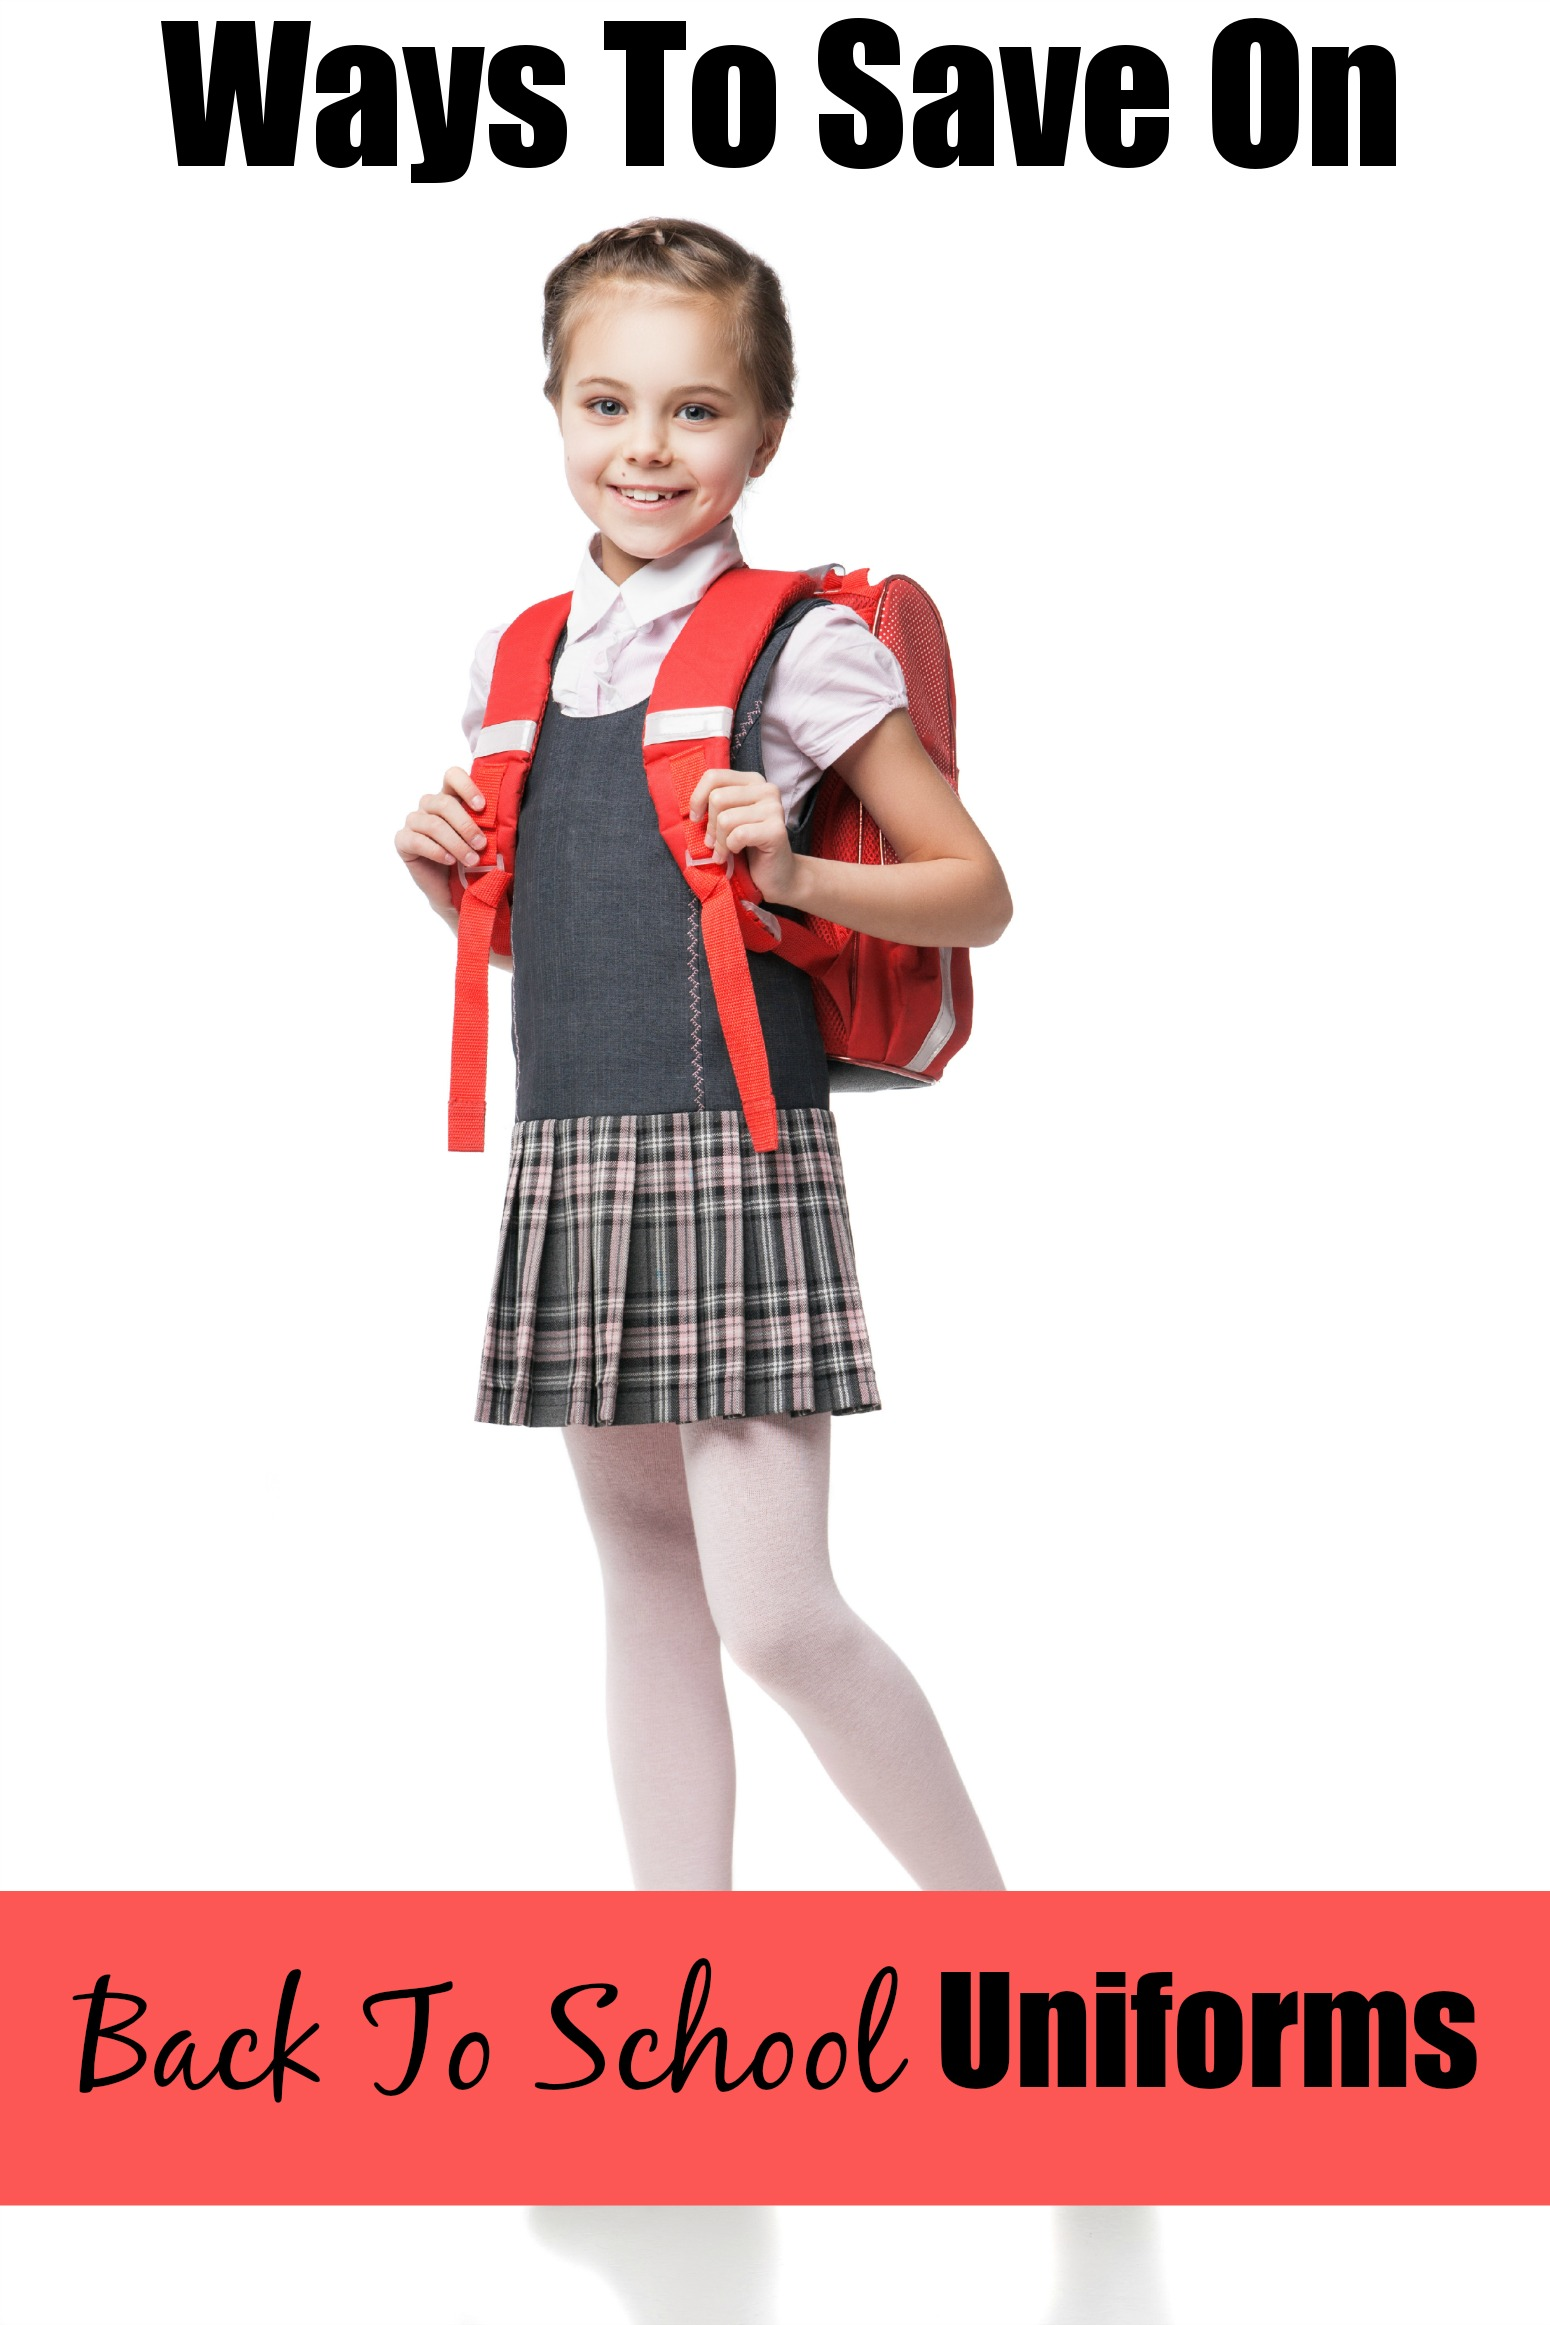 Ways To Save On Back To School Uniforms